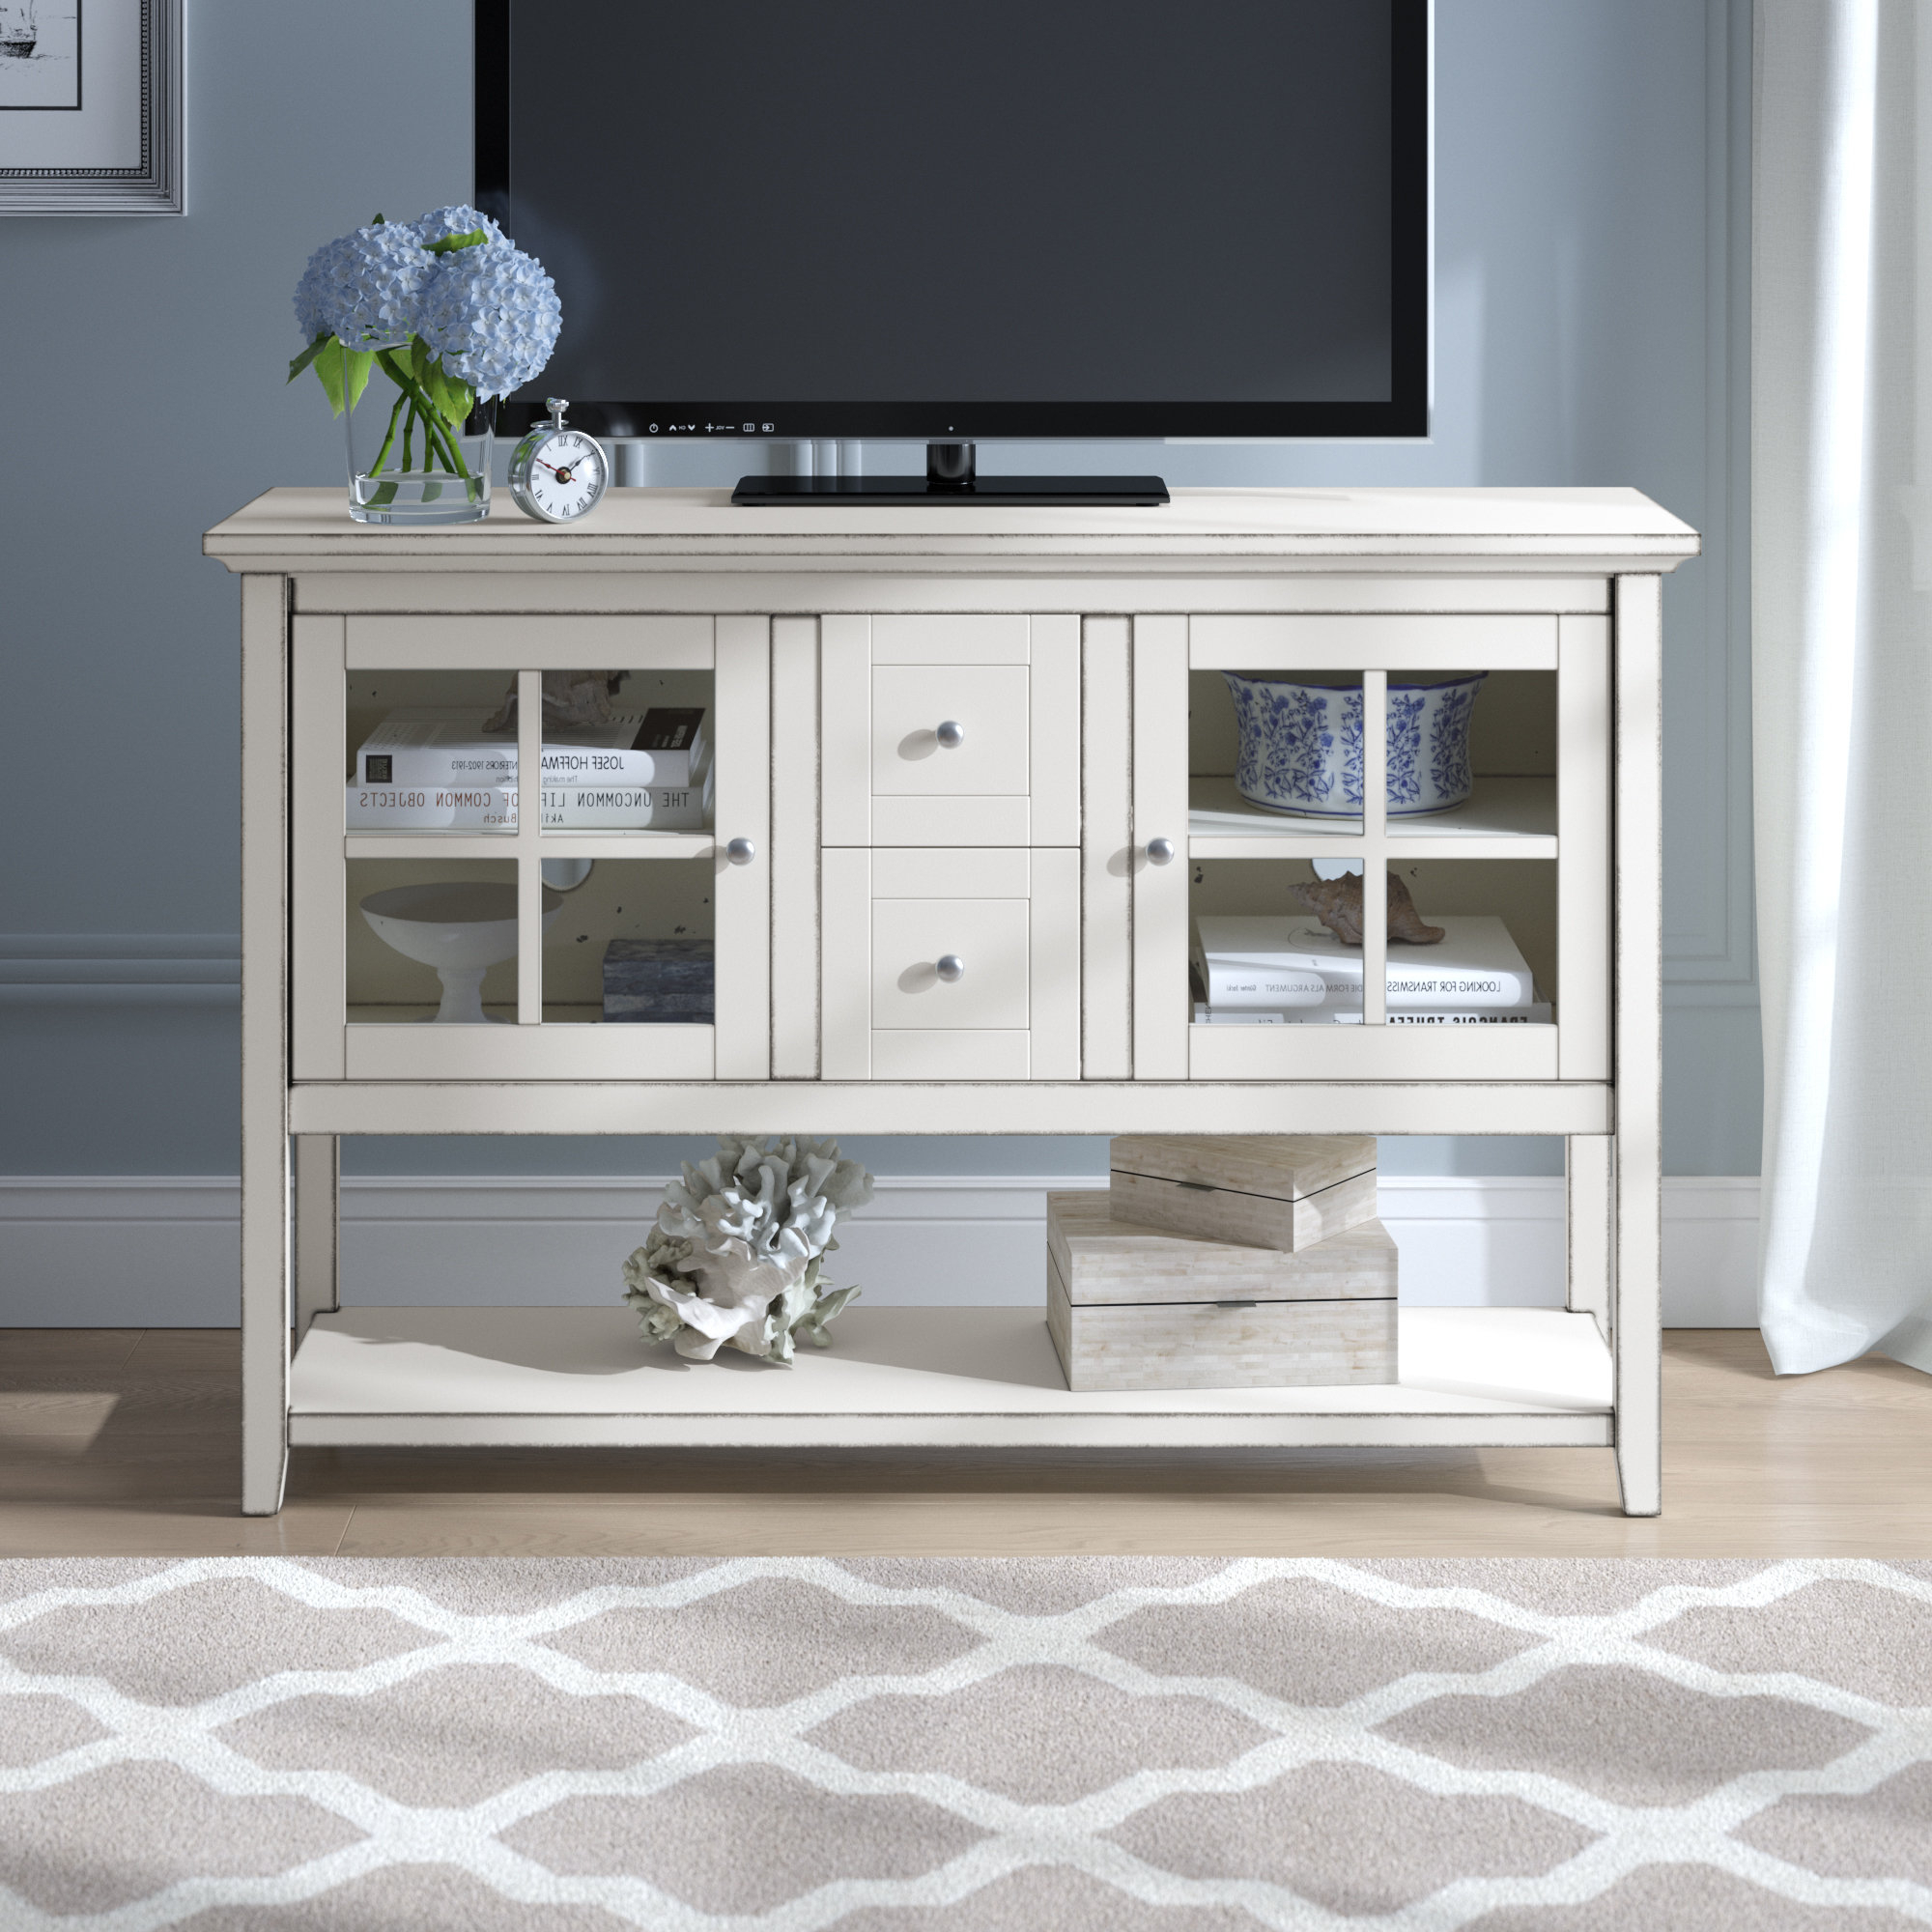 72 Inch Tv Stand | Wayfair Throughout Kenzie 60 Inch Open Display Tv Stands (View 12 of 20)